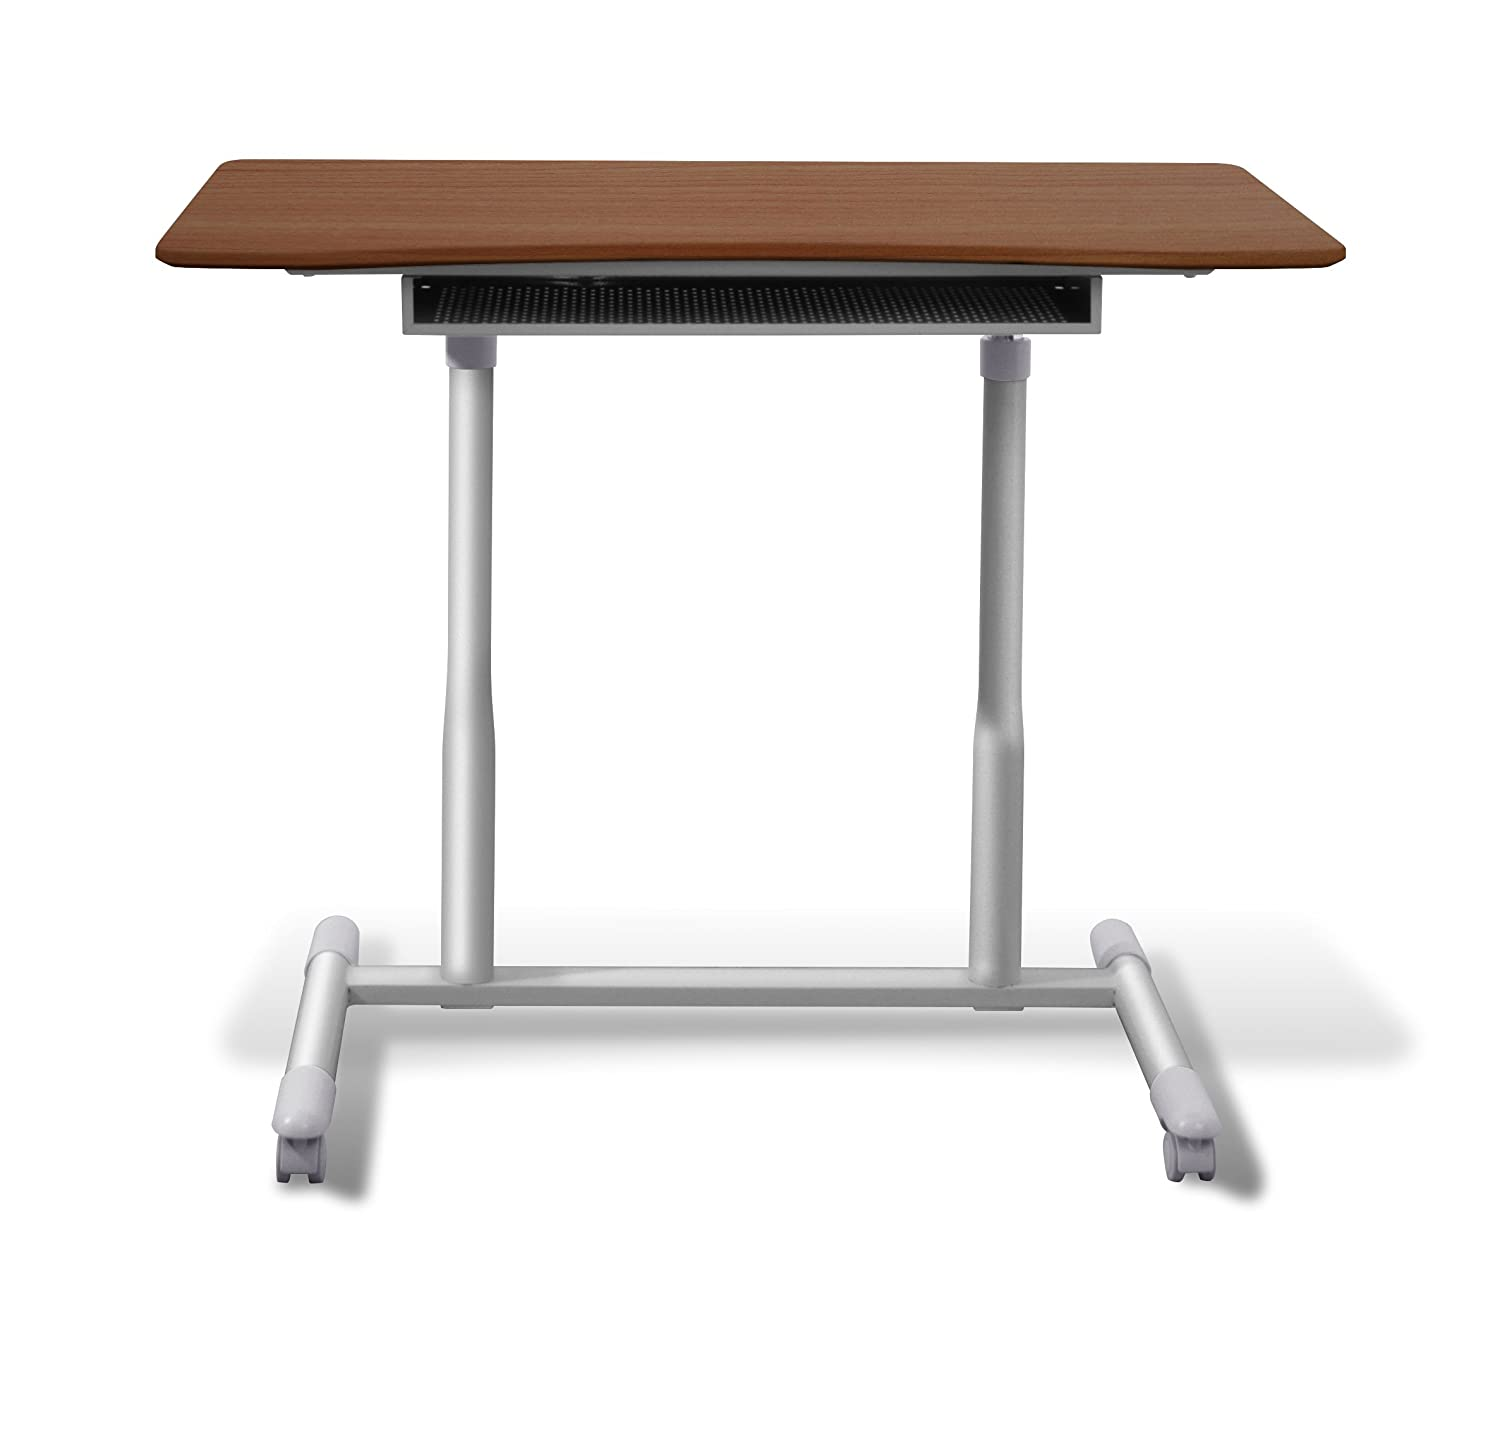 details style standing up greenvirals these desk we height t desktop adjustable ideas photo vs desks stand vivo best